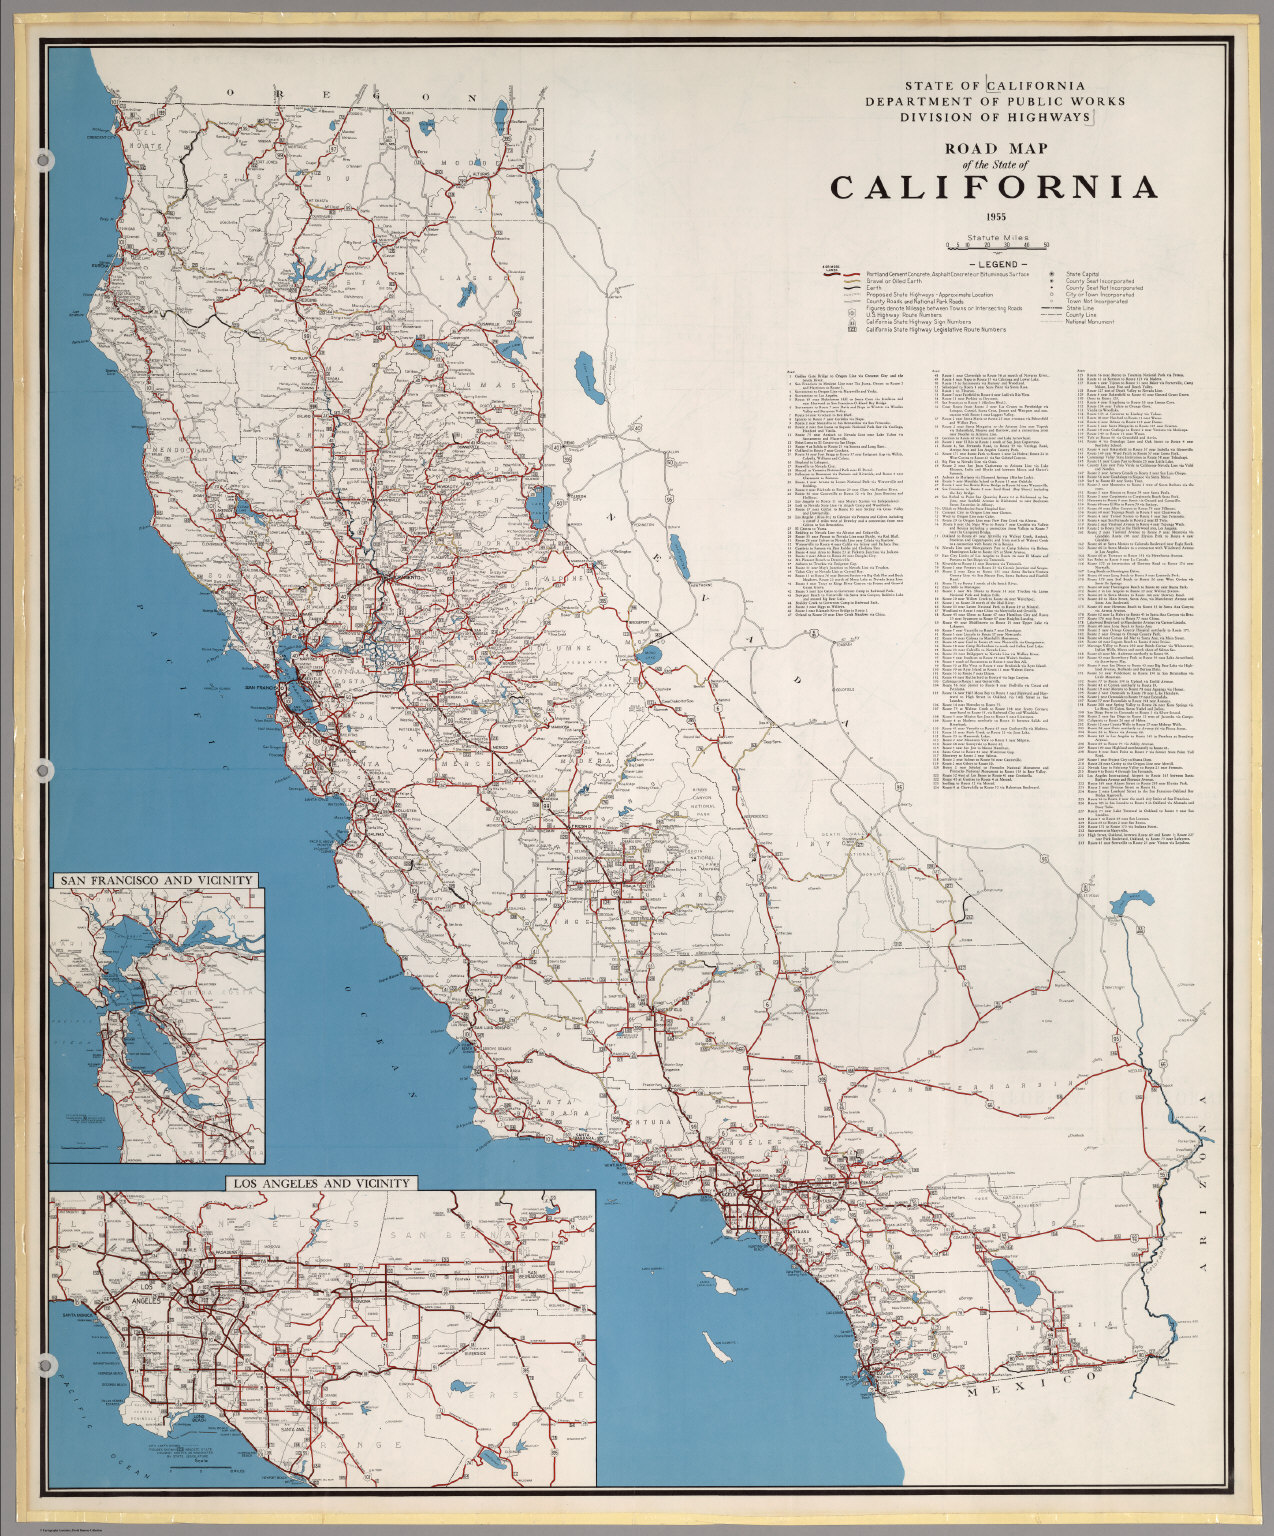 Road Map of the State of California, 1955. - David Rumsey Historical California Road Map Of State on